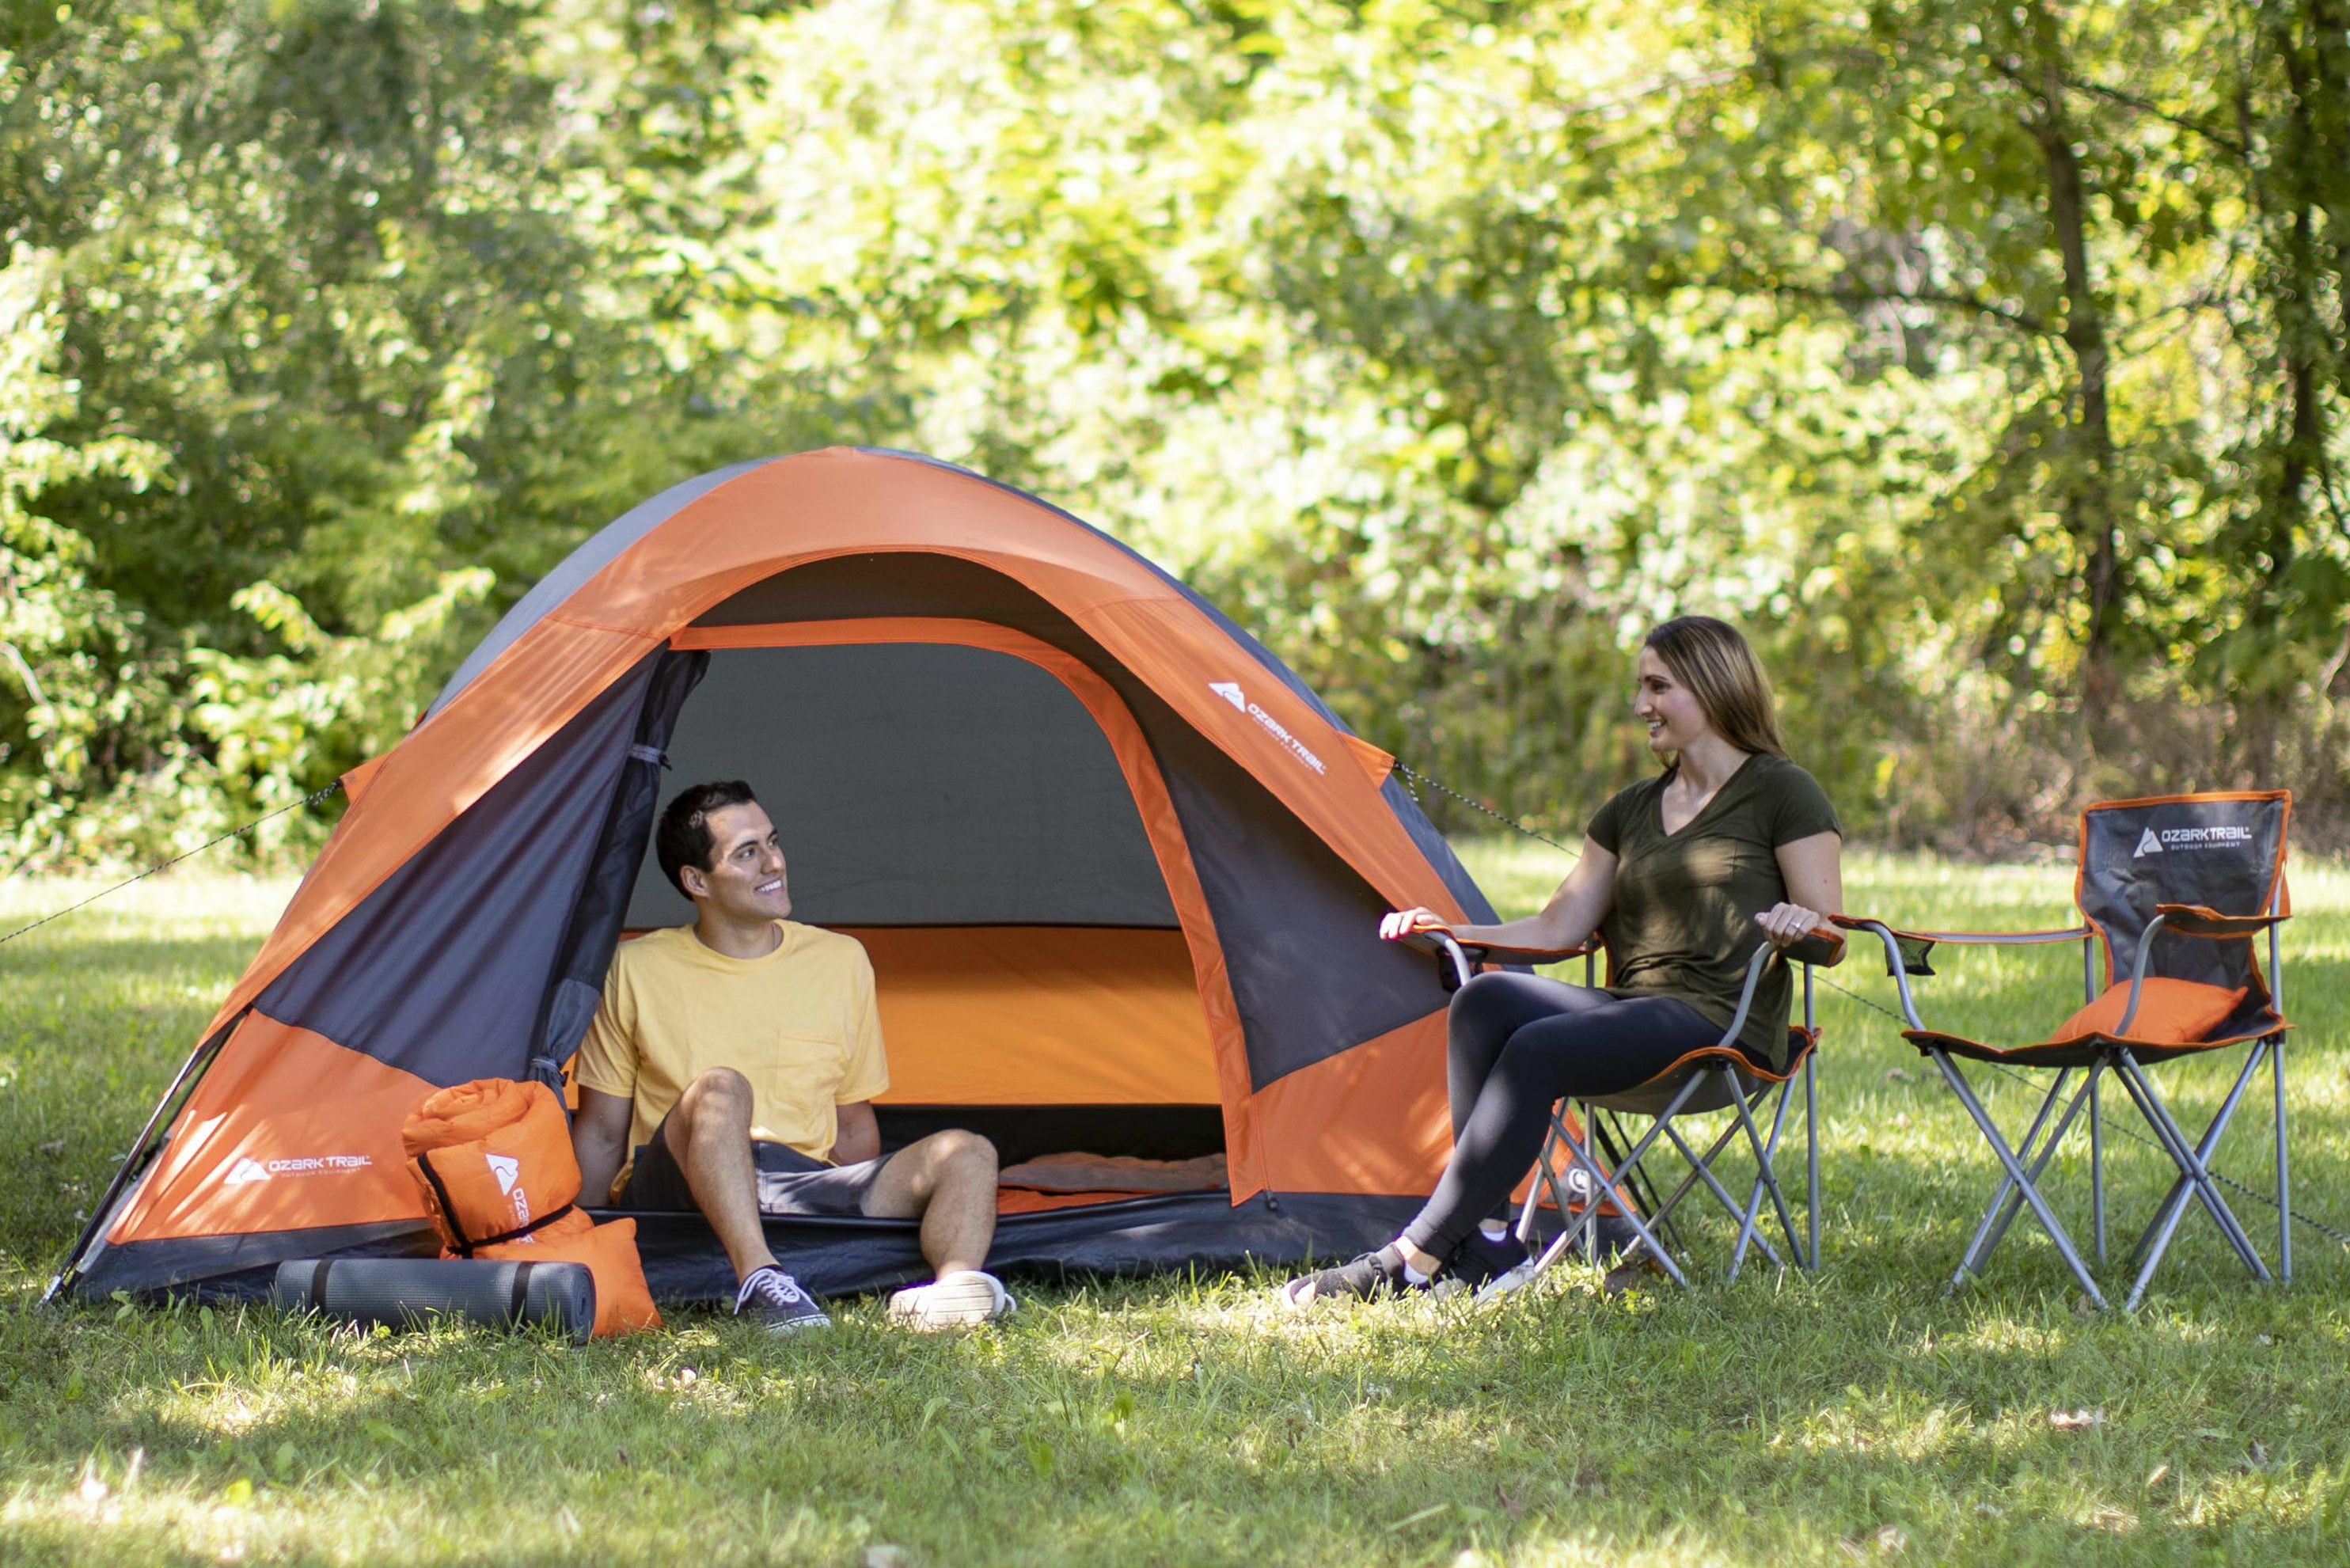 Headed to an Outdoor Escapade? These Camping Sets Are